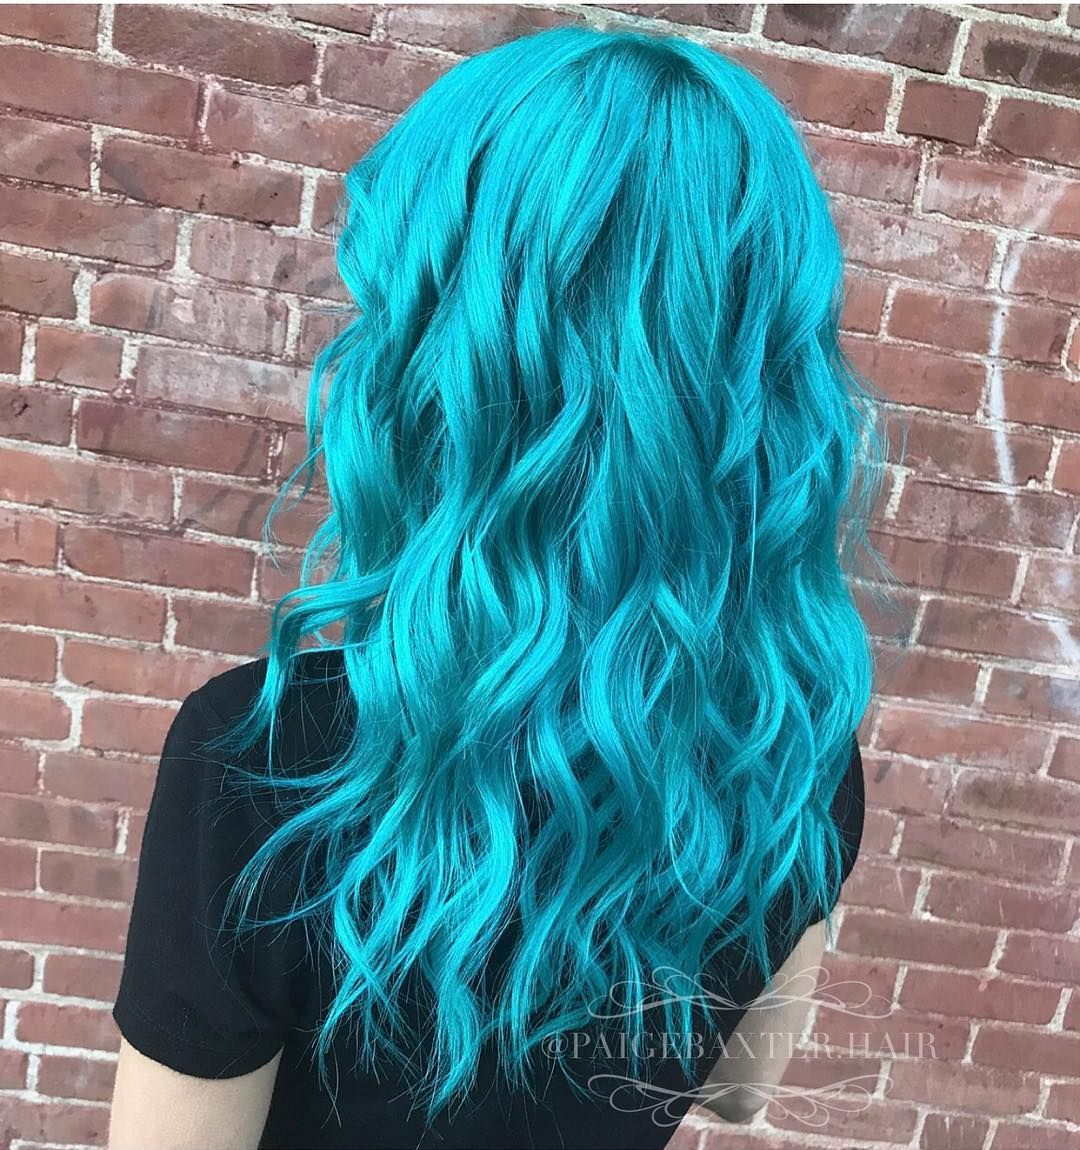 "BEVERLY MA HAIRSTYLIST on Instagram: ""When life gives you PULPRIOT...create Mermaids"